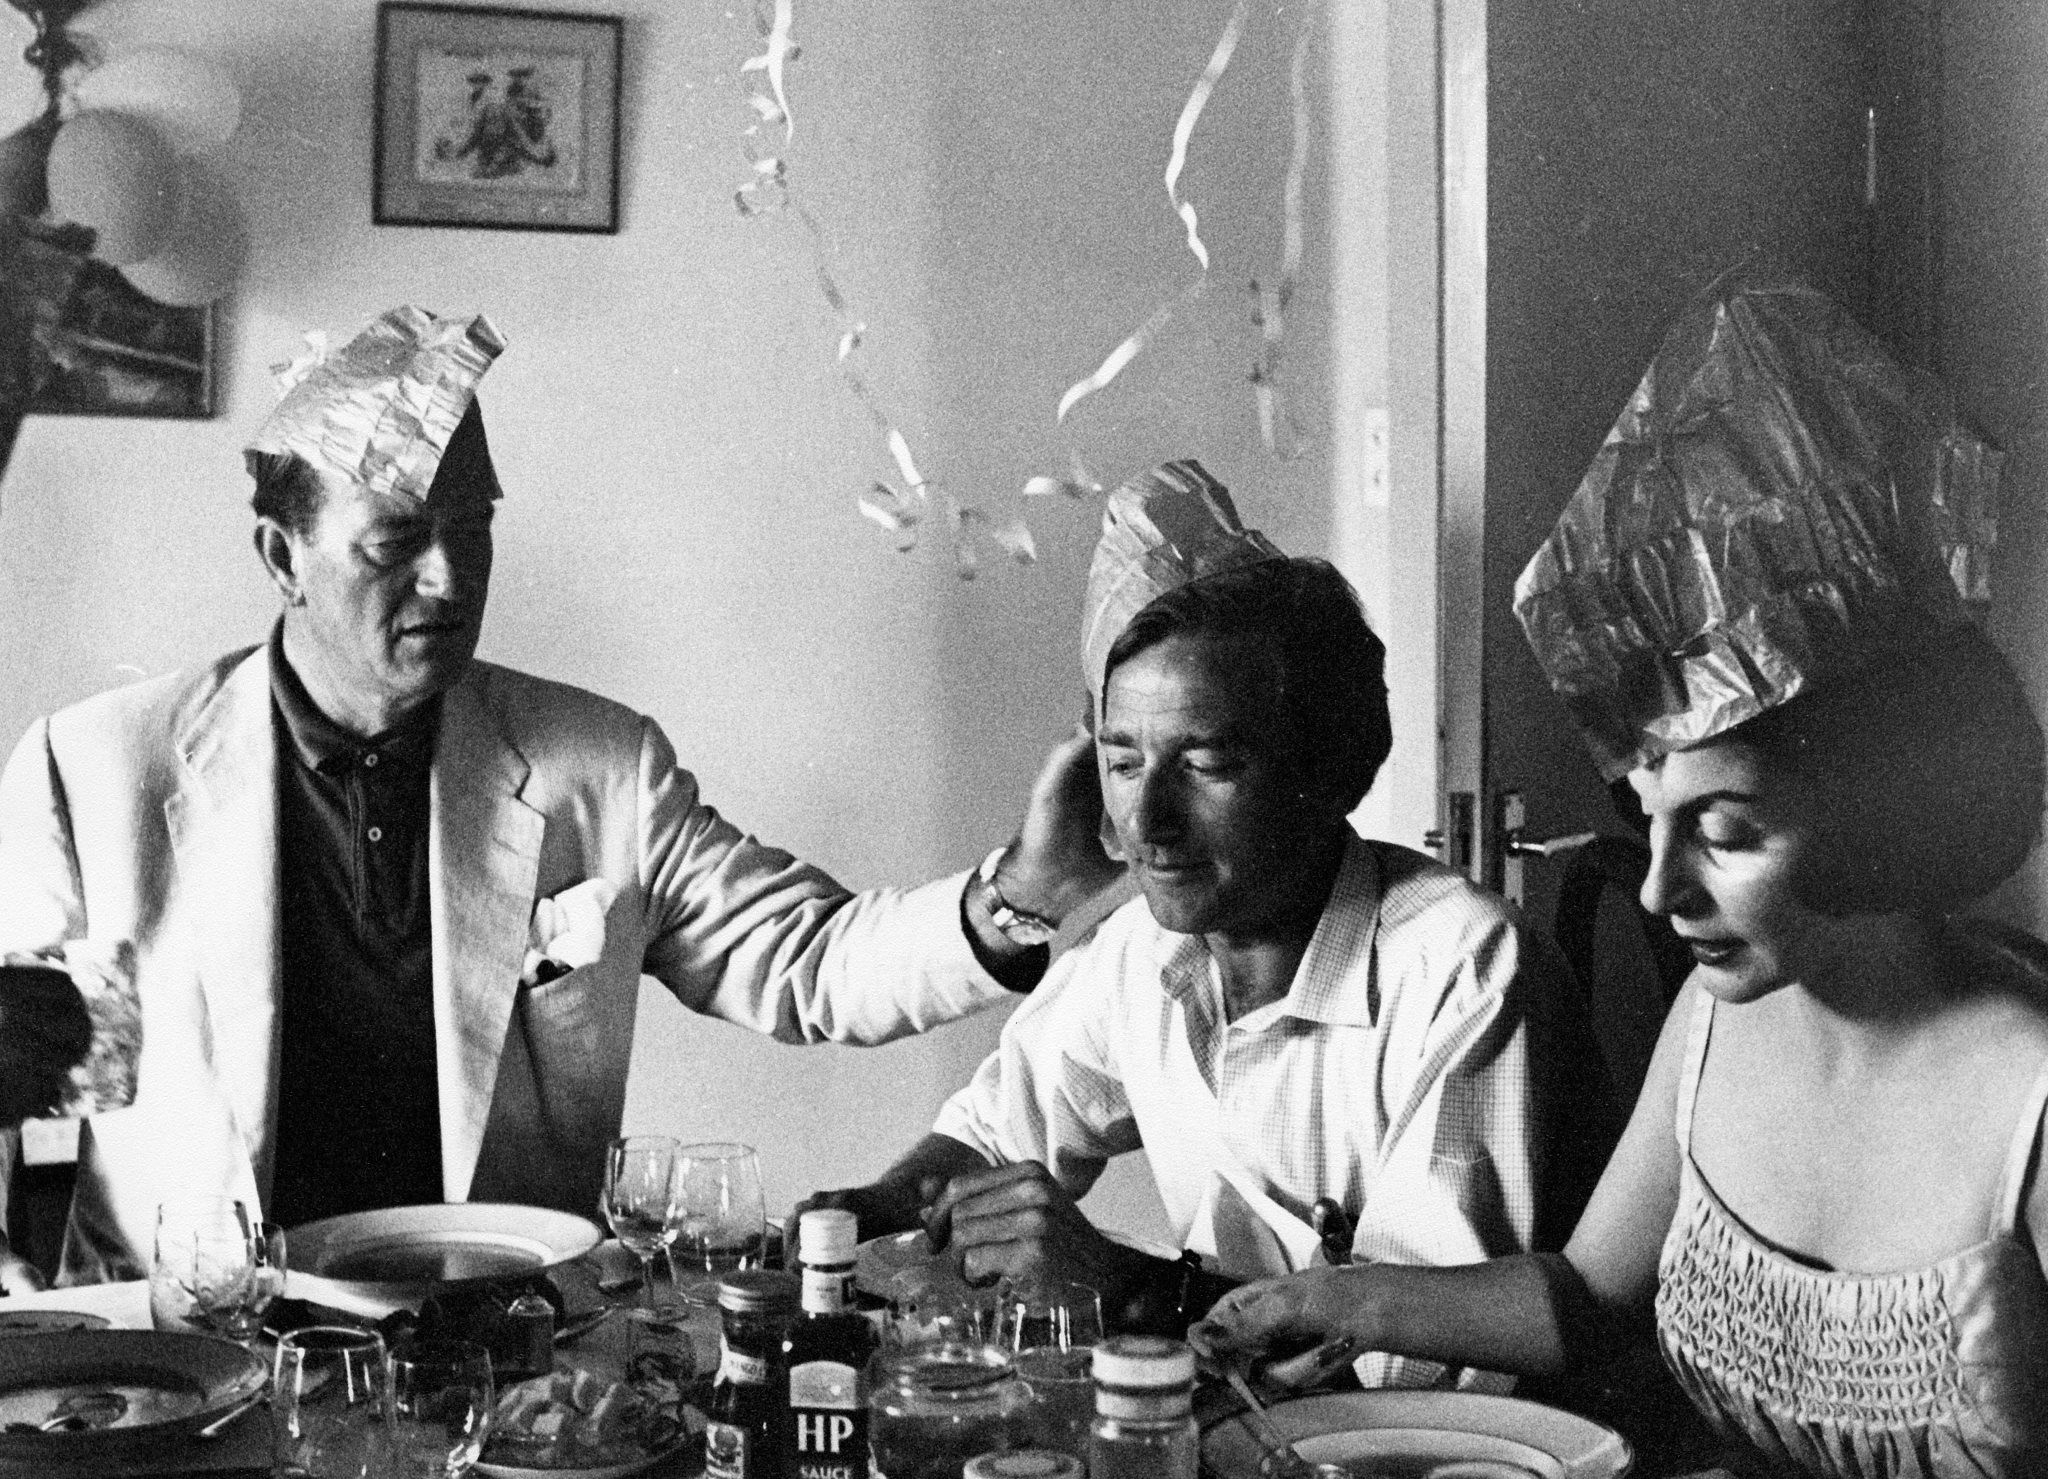 The Duke celebrated New Years Eve in Africa in 1960 while